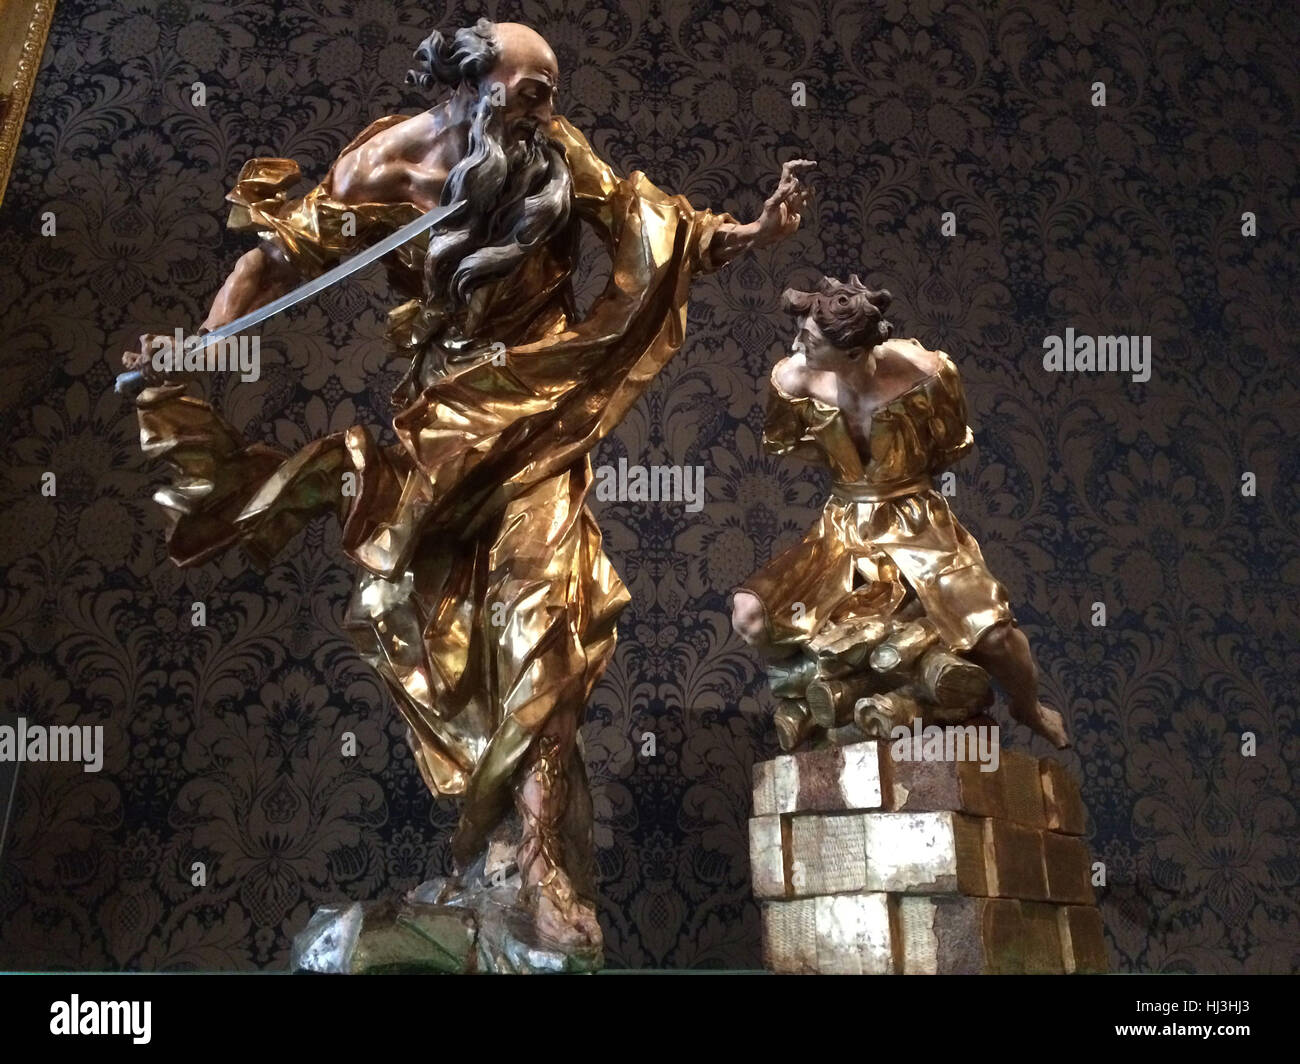 Sacrifice of Isaac (1758). Gilded and coloured wooden statue by Baroque sculptor Johann Georg Pinsel on display - Stock Image